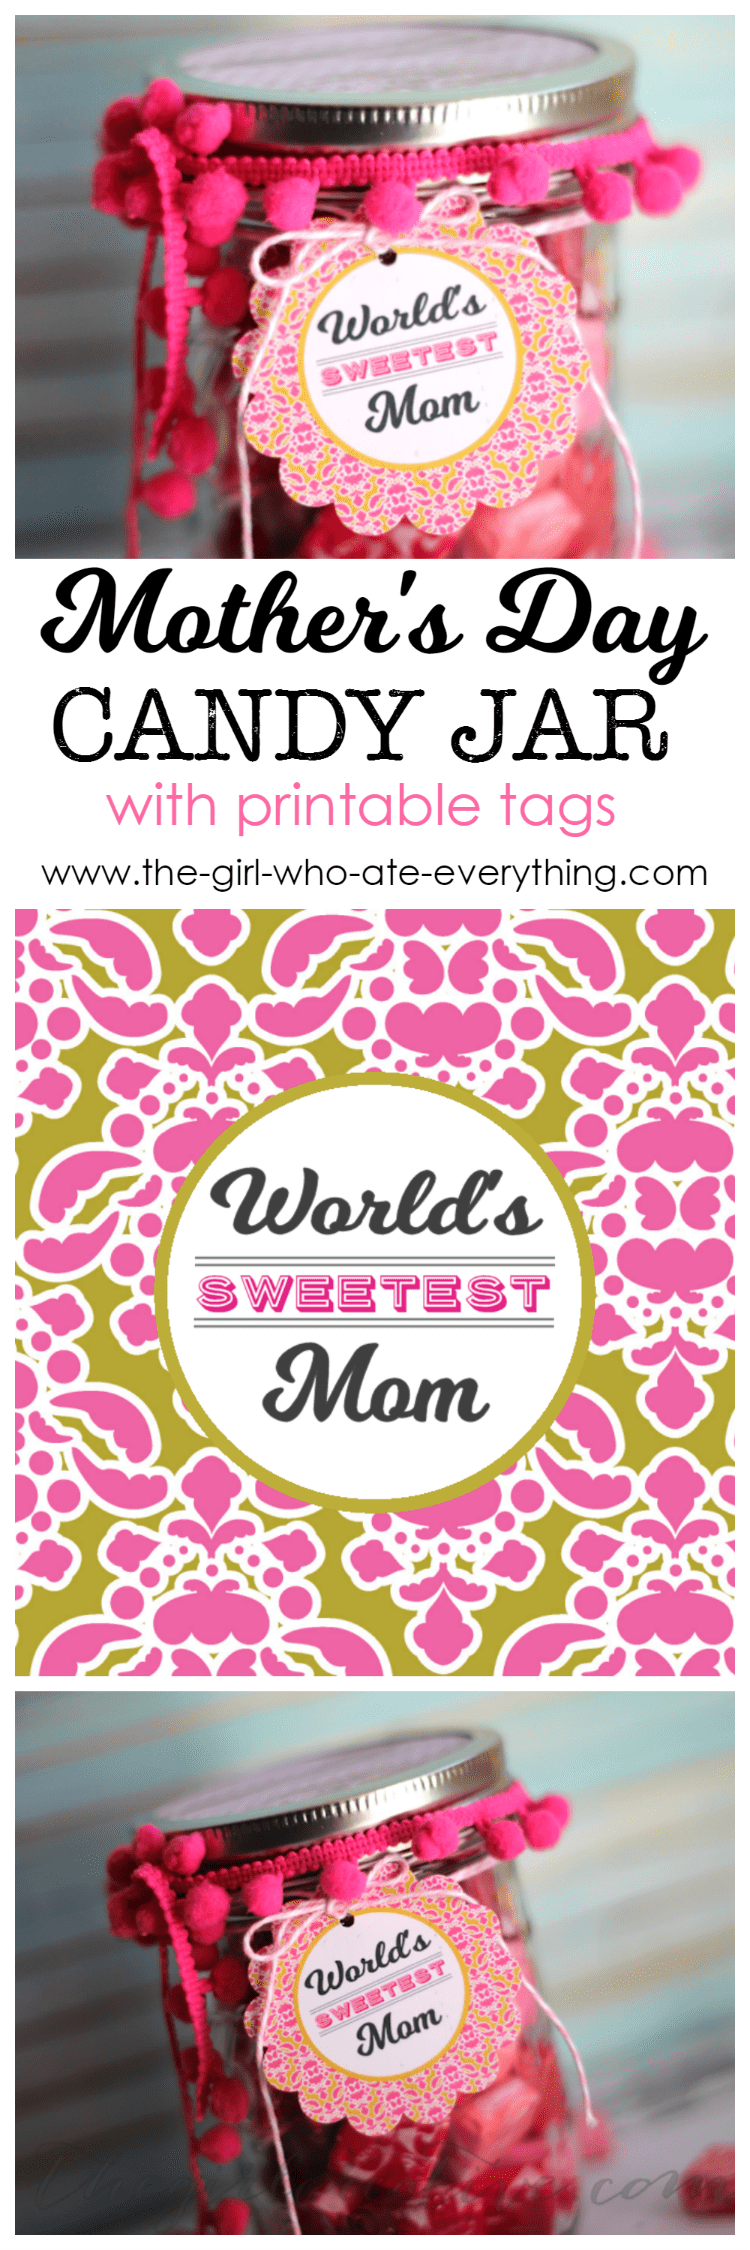 Mother's Day Candy Jar with printable tags